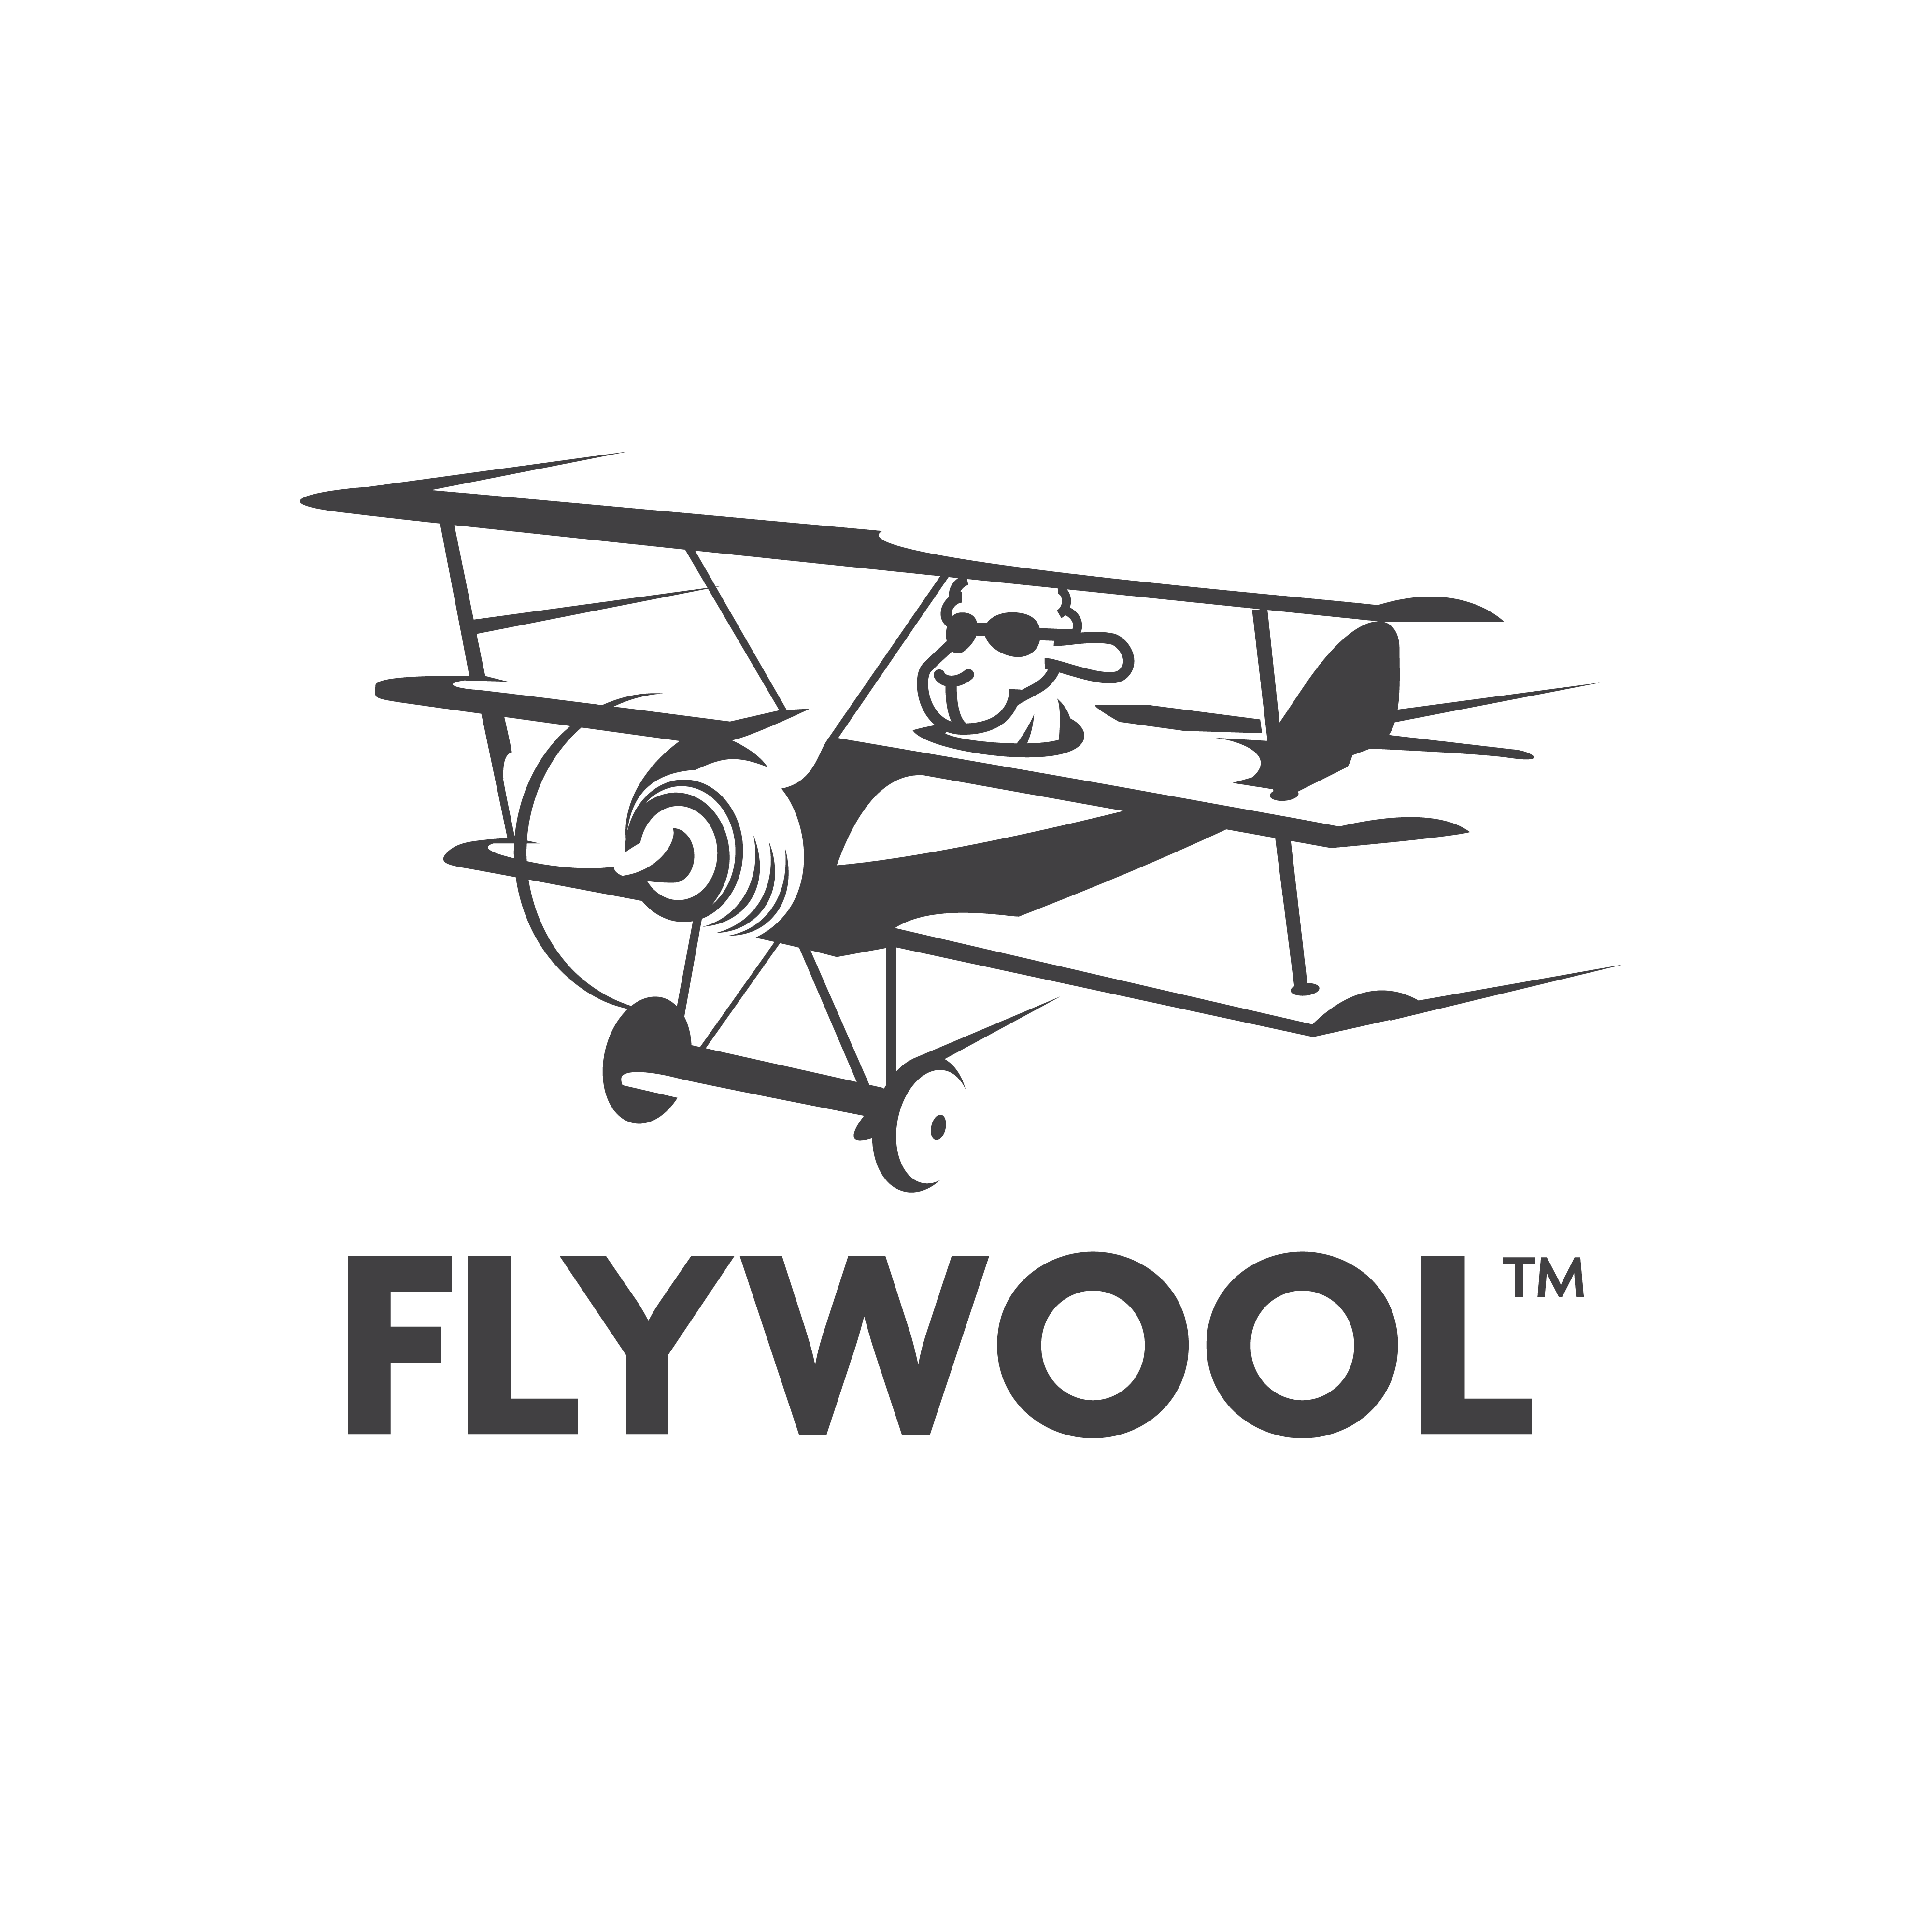 Fitting Logo for Flywool (a clothing company)